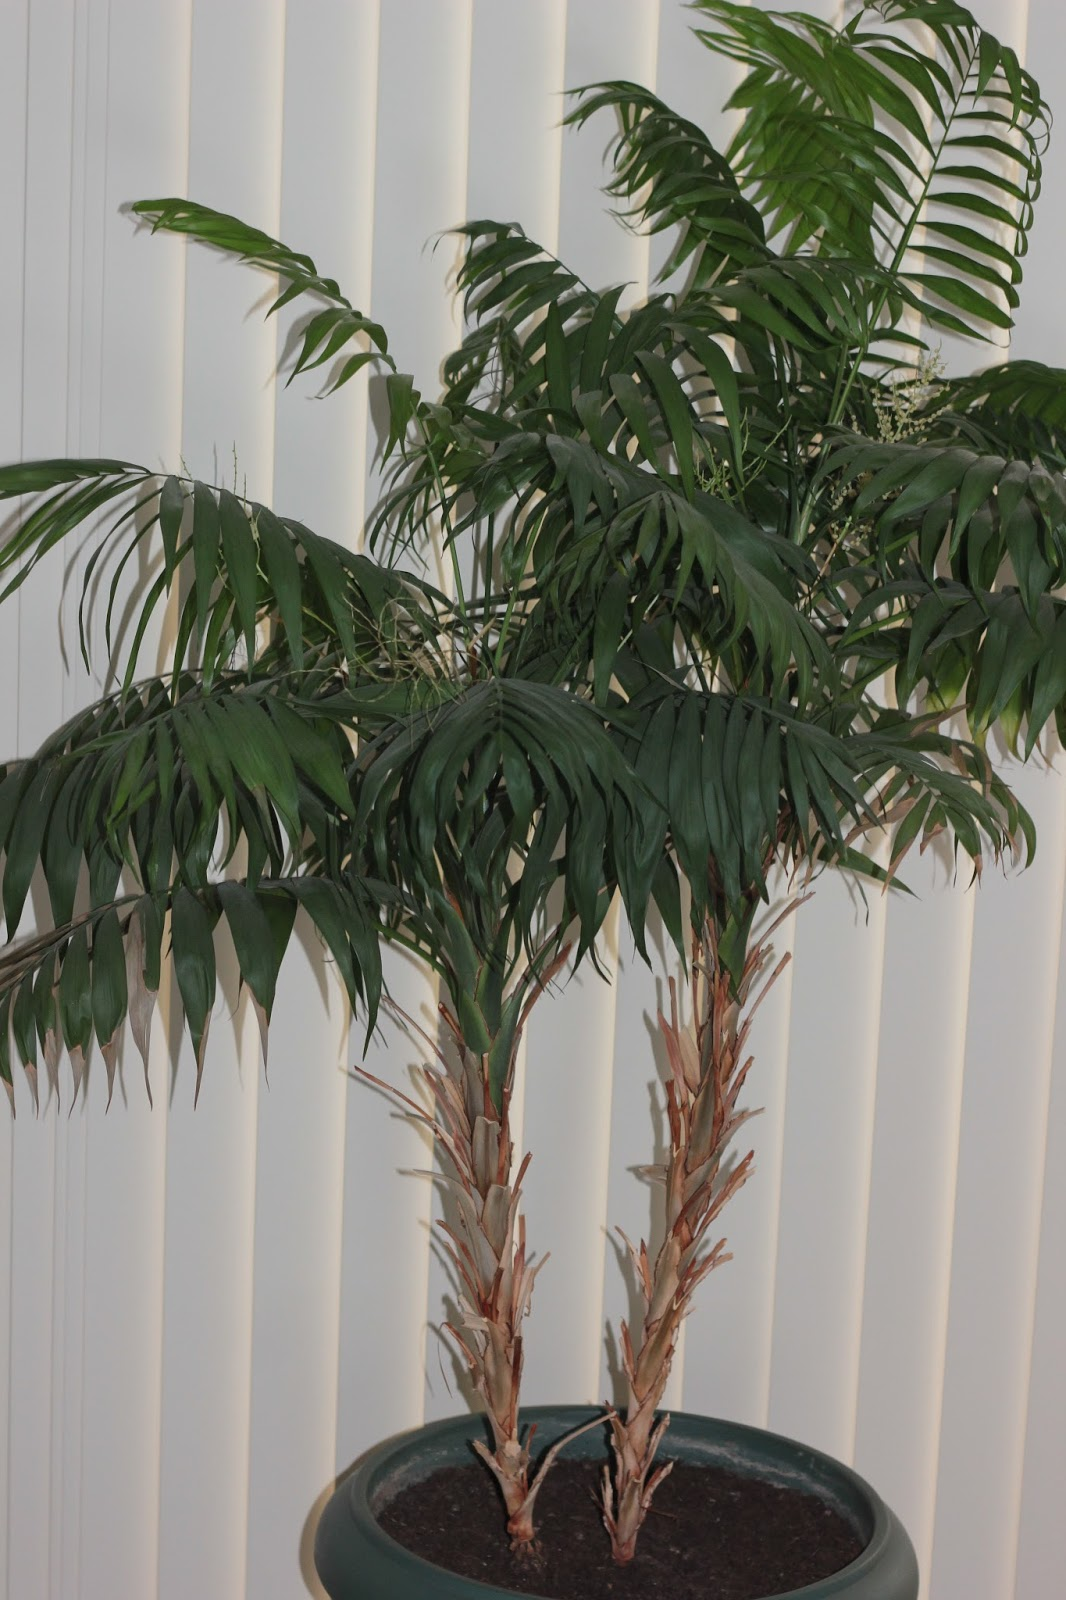 Palm tree indoor houseplant cleans the air and removes carbon dioxide from indoor environments.